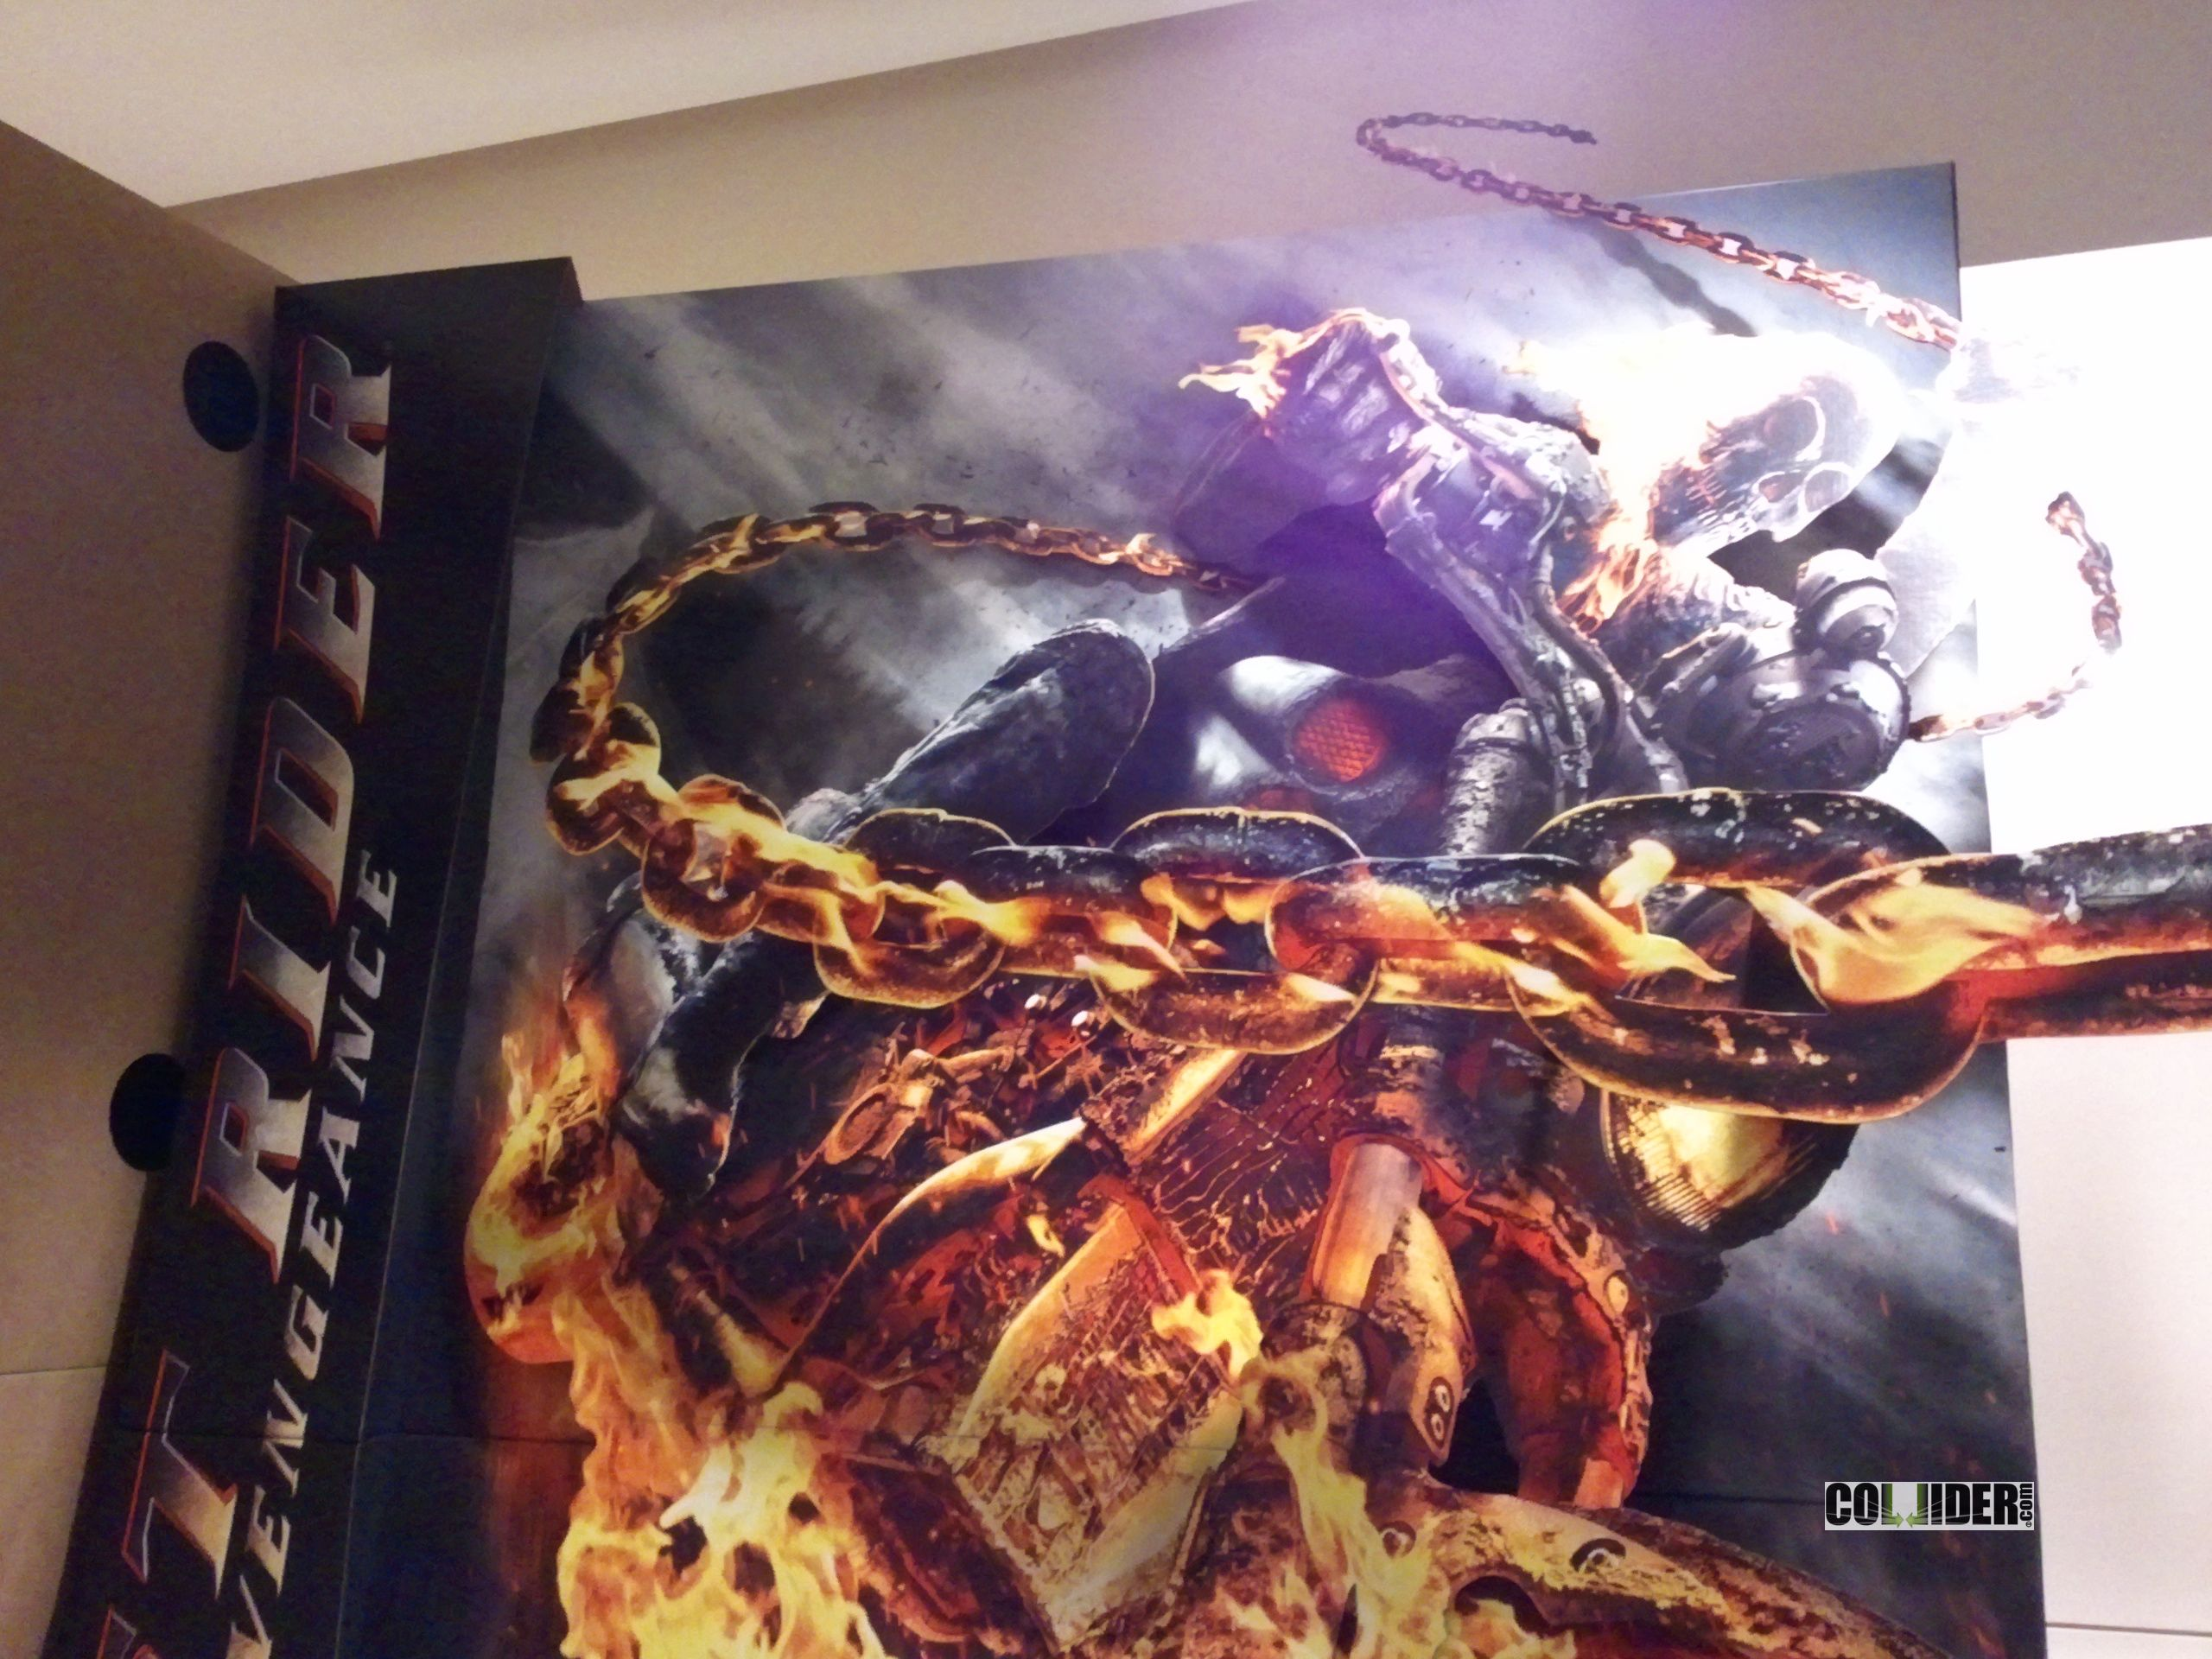 ghost rider 2 21 jump street and men in black 3 standee